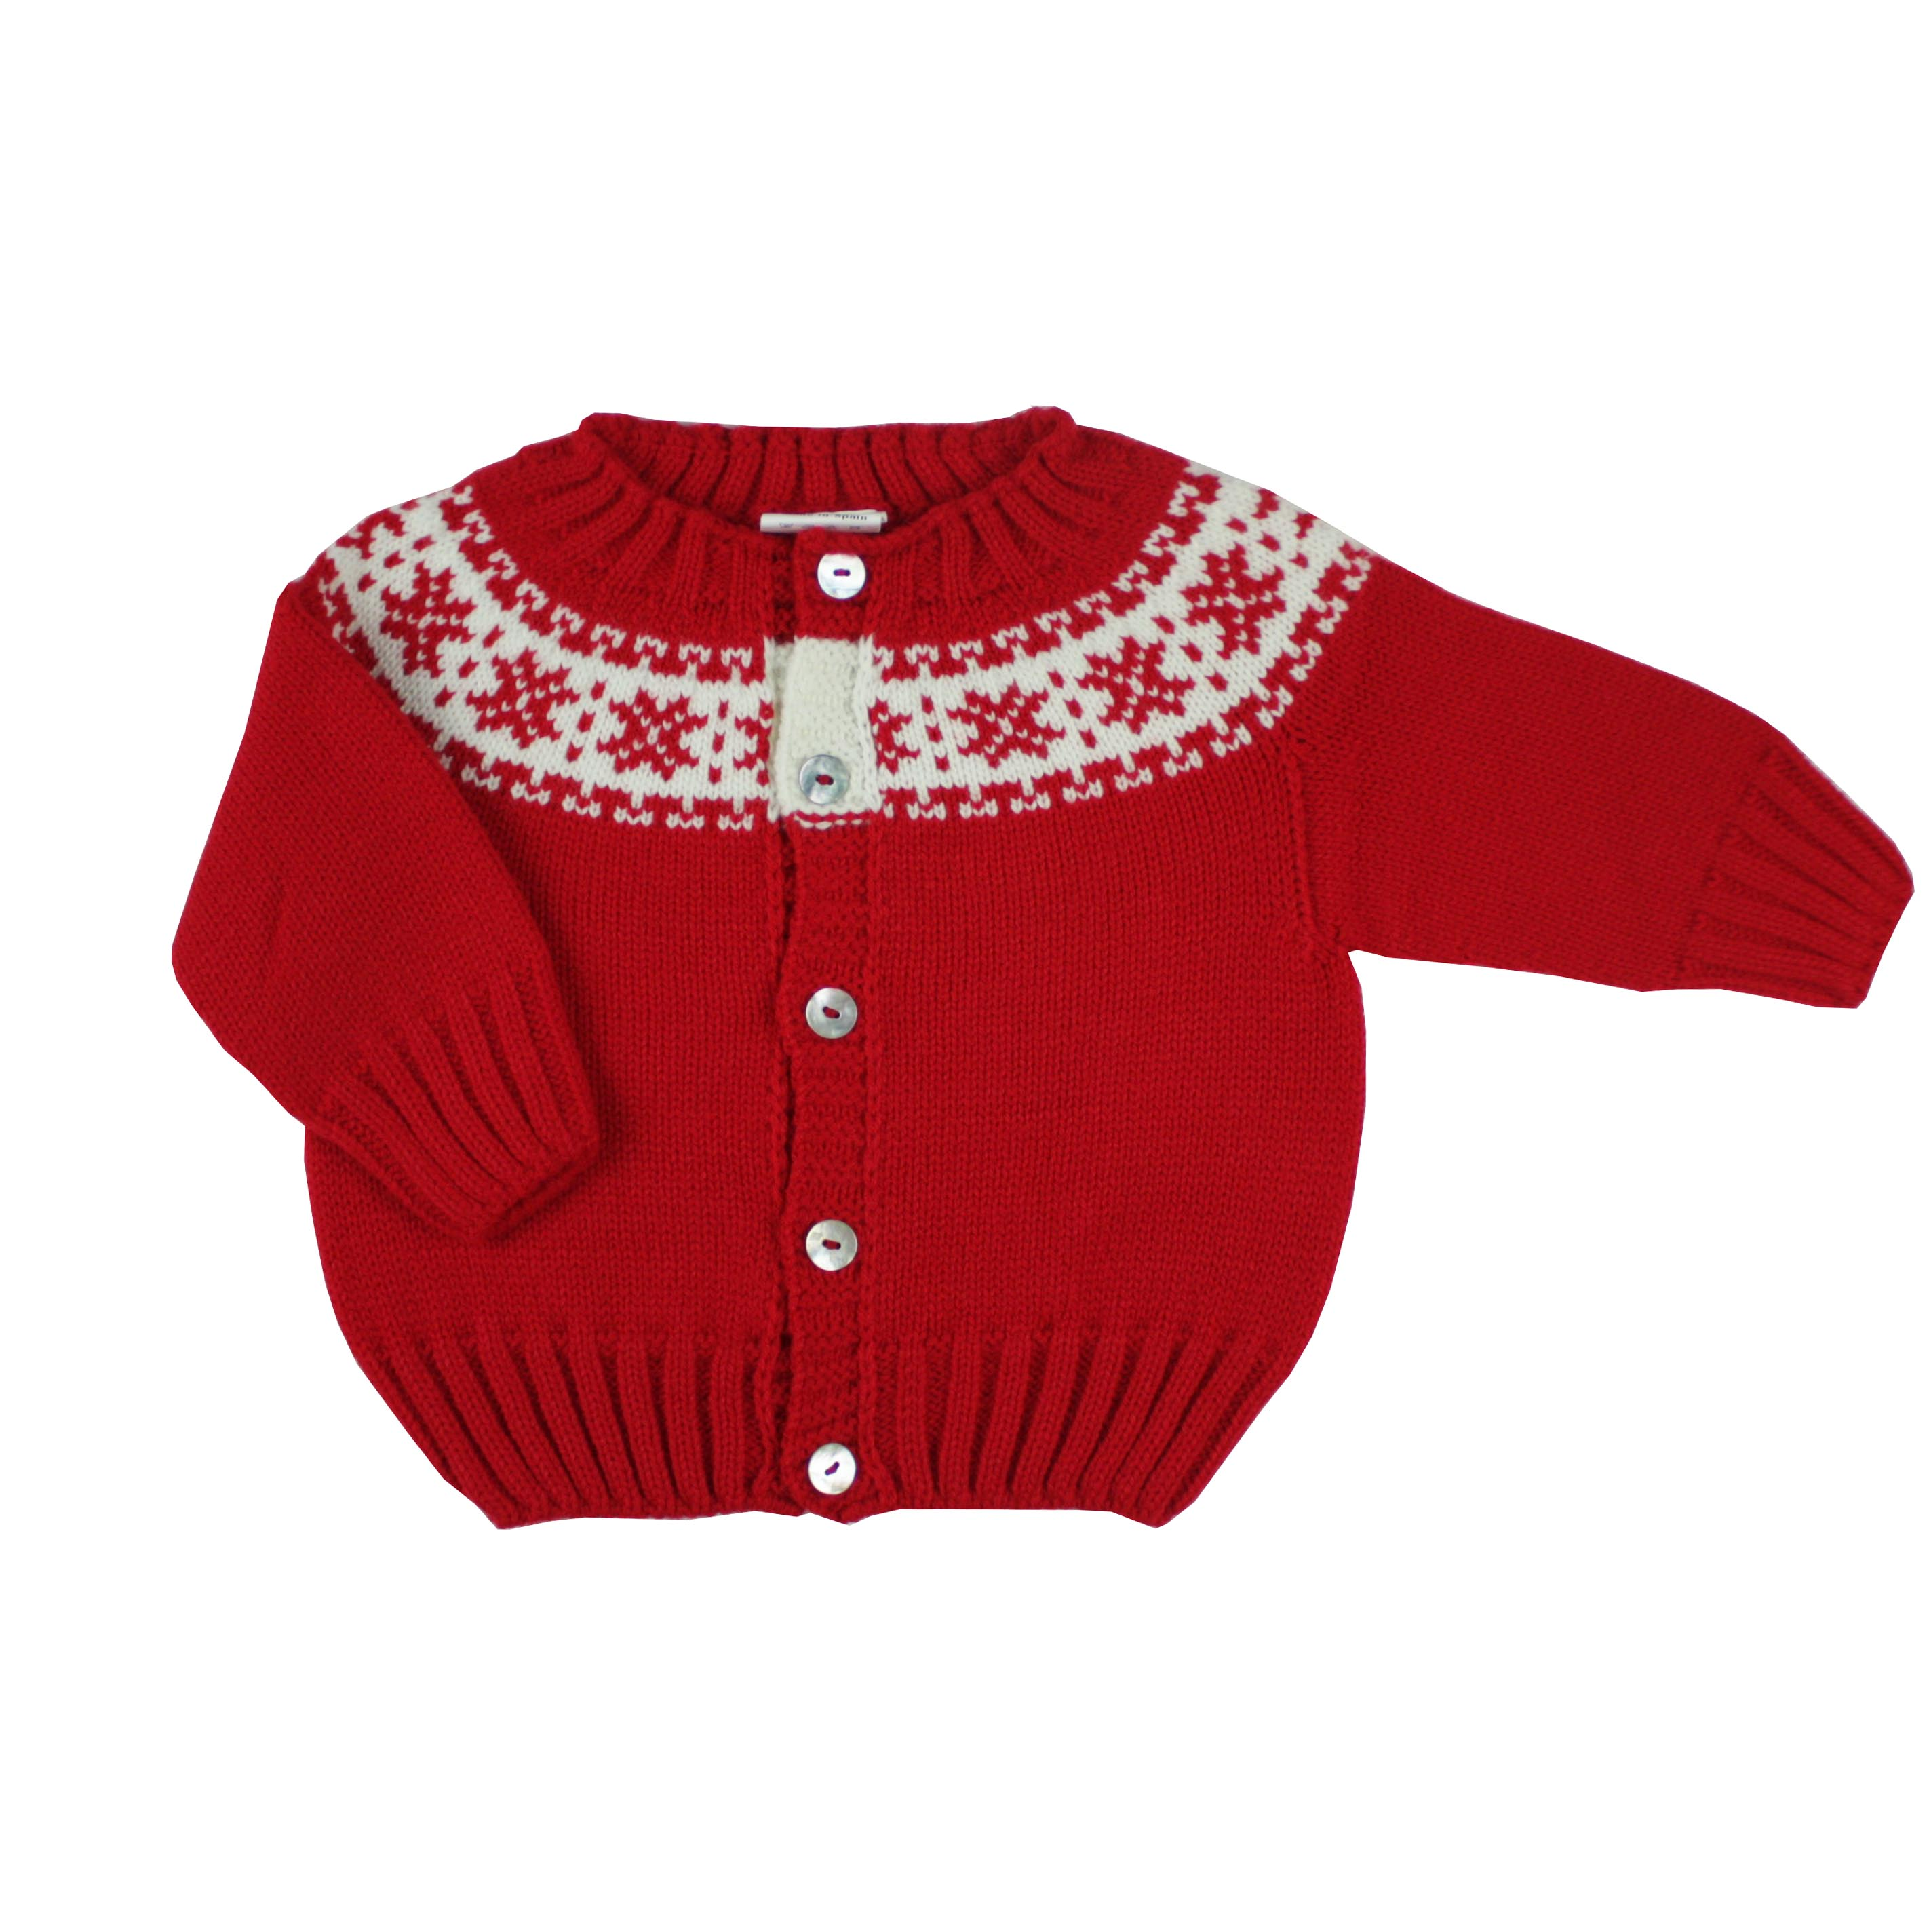 7b0eaf5deea9 Red knitted cardigan with fretwork.Made in Spain by m h